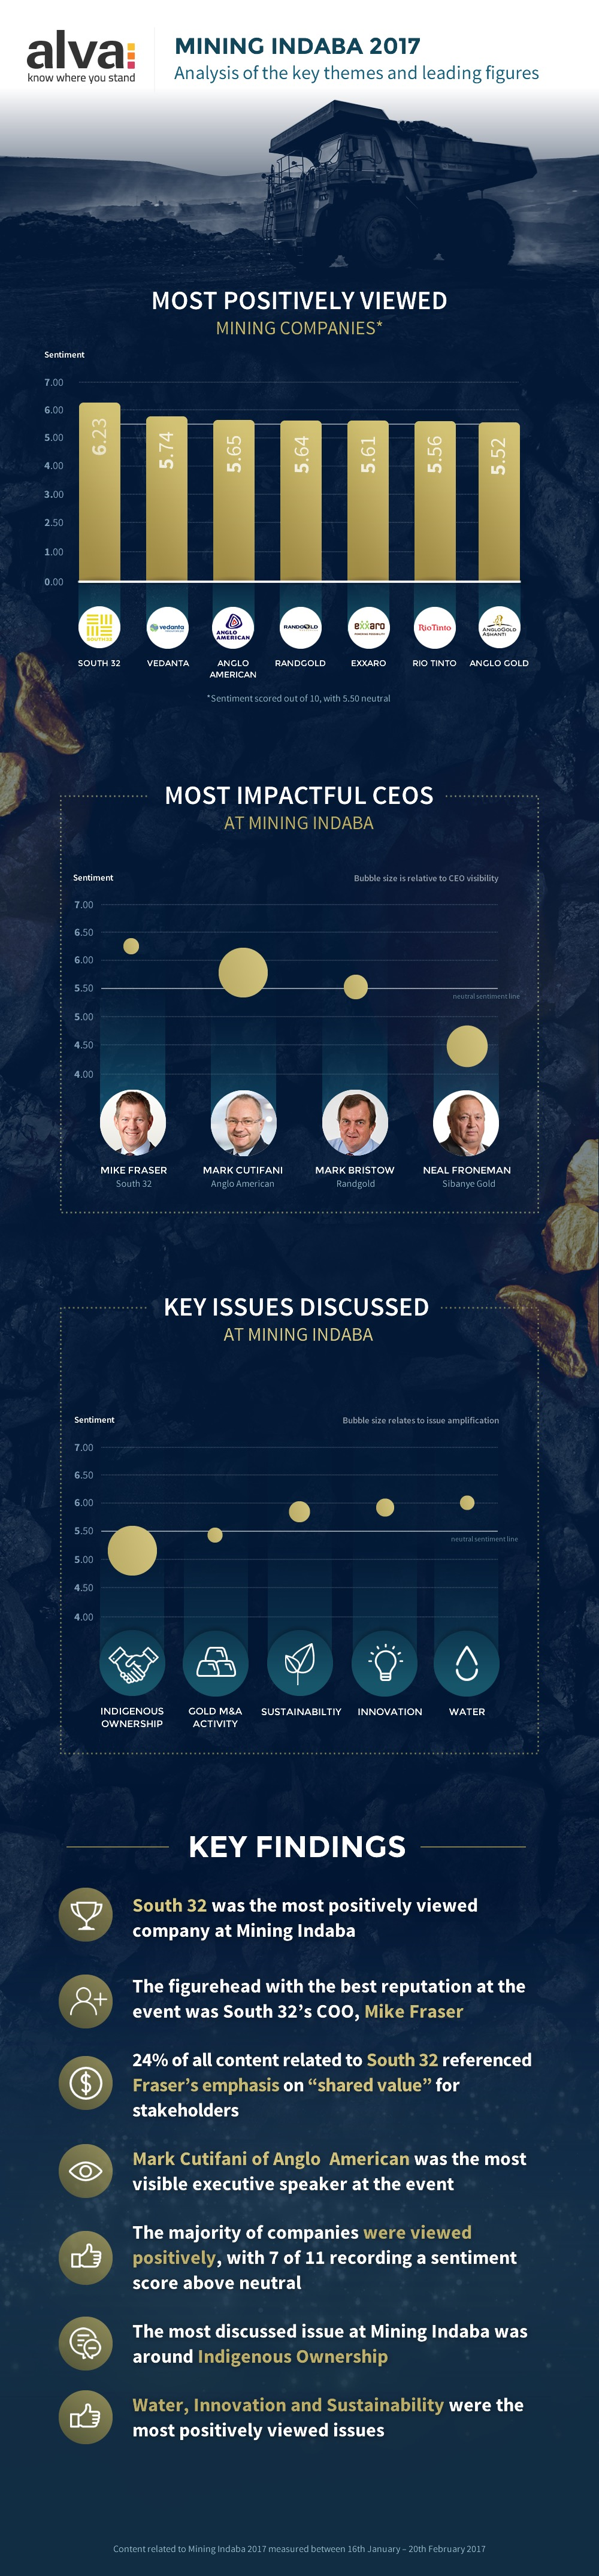 Mining Indaba 2017 - Key issues and voices